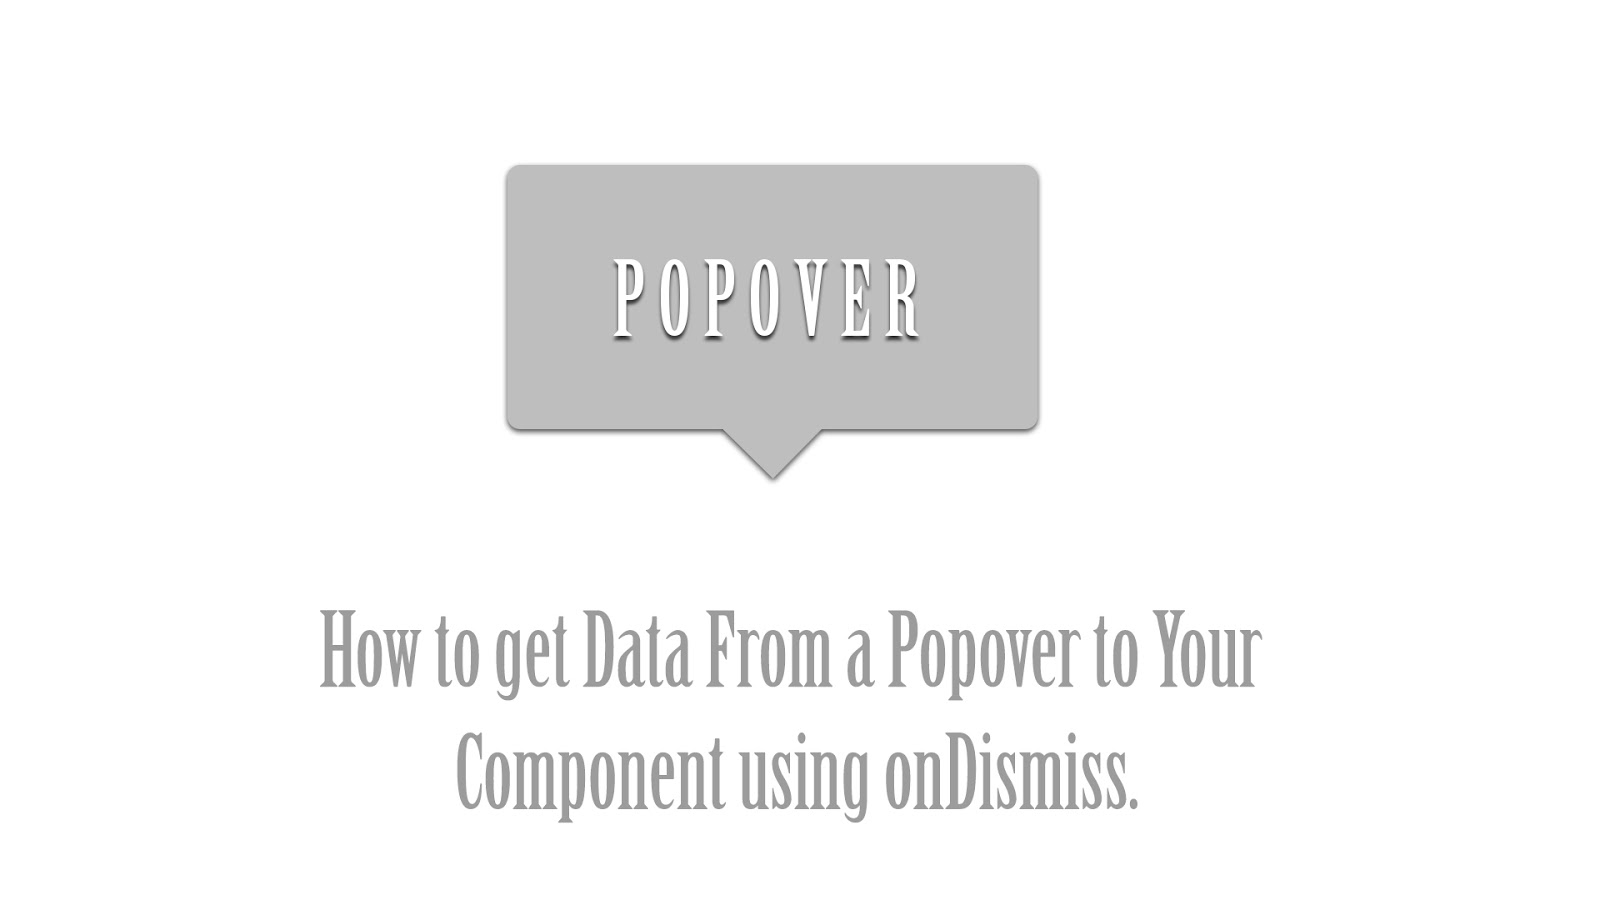 How to get Data From a Popover to Your Component using onDismiss